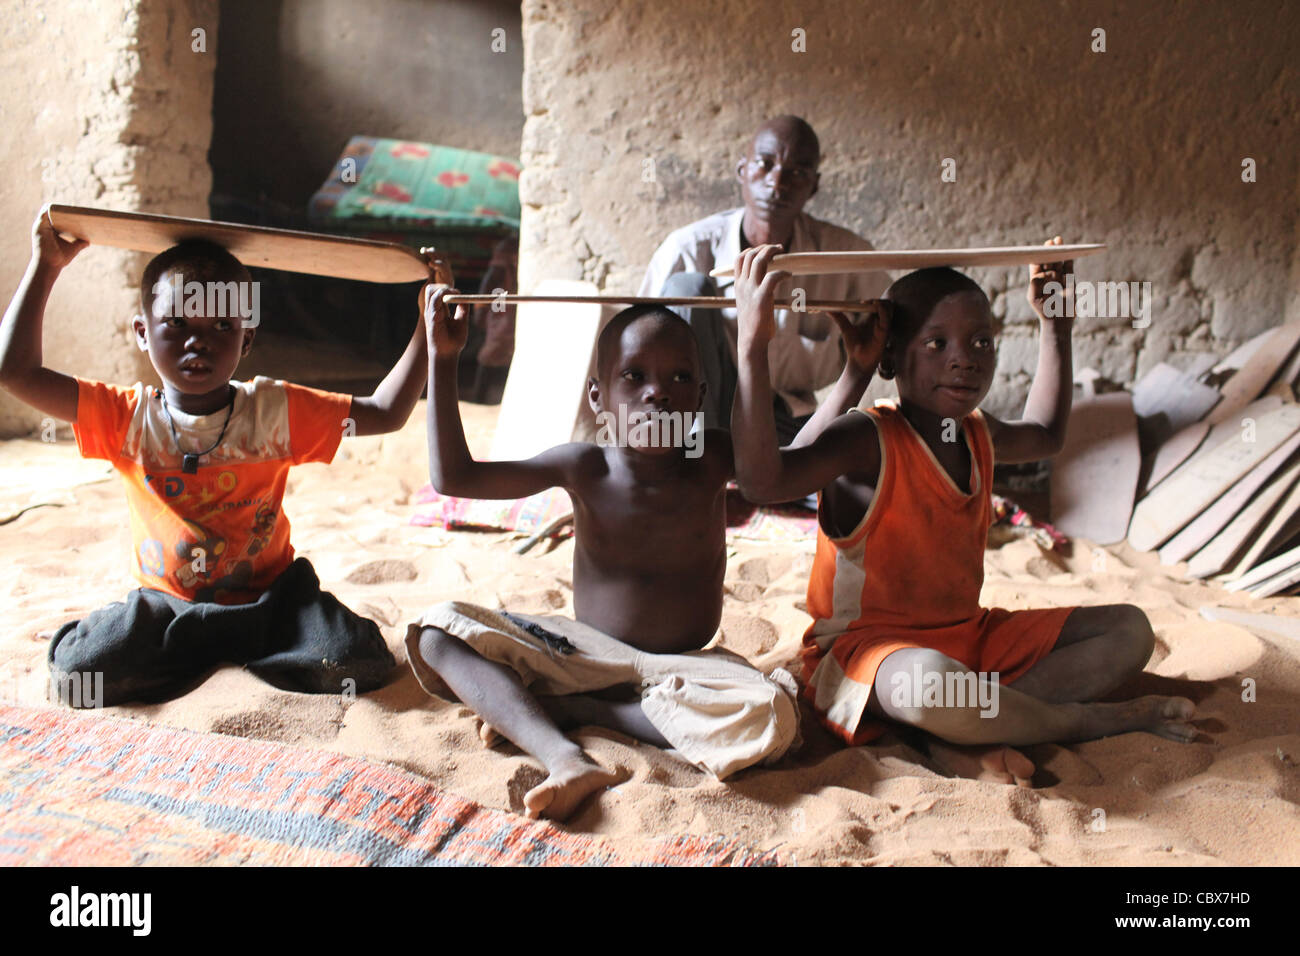 Boys in a Koran school, in Djenne, Mali, Africa. Mali, Africa - Stock Image